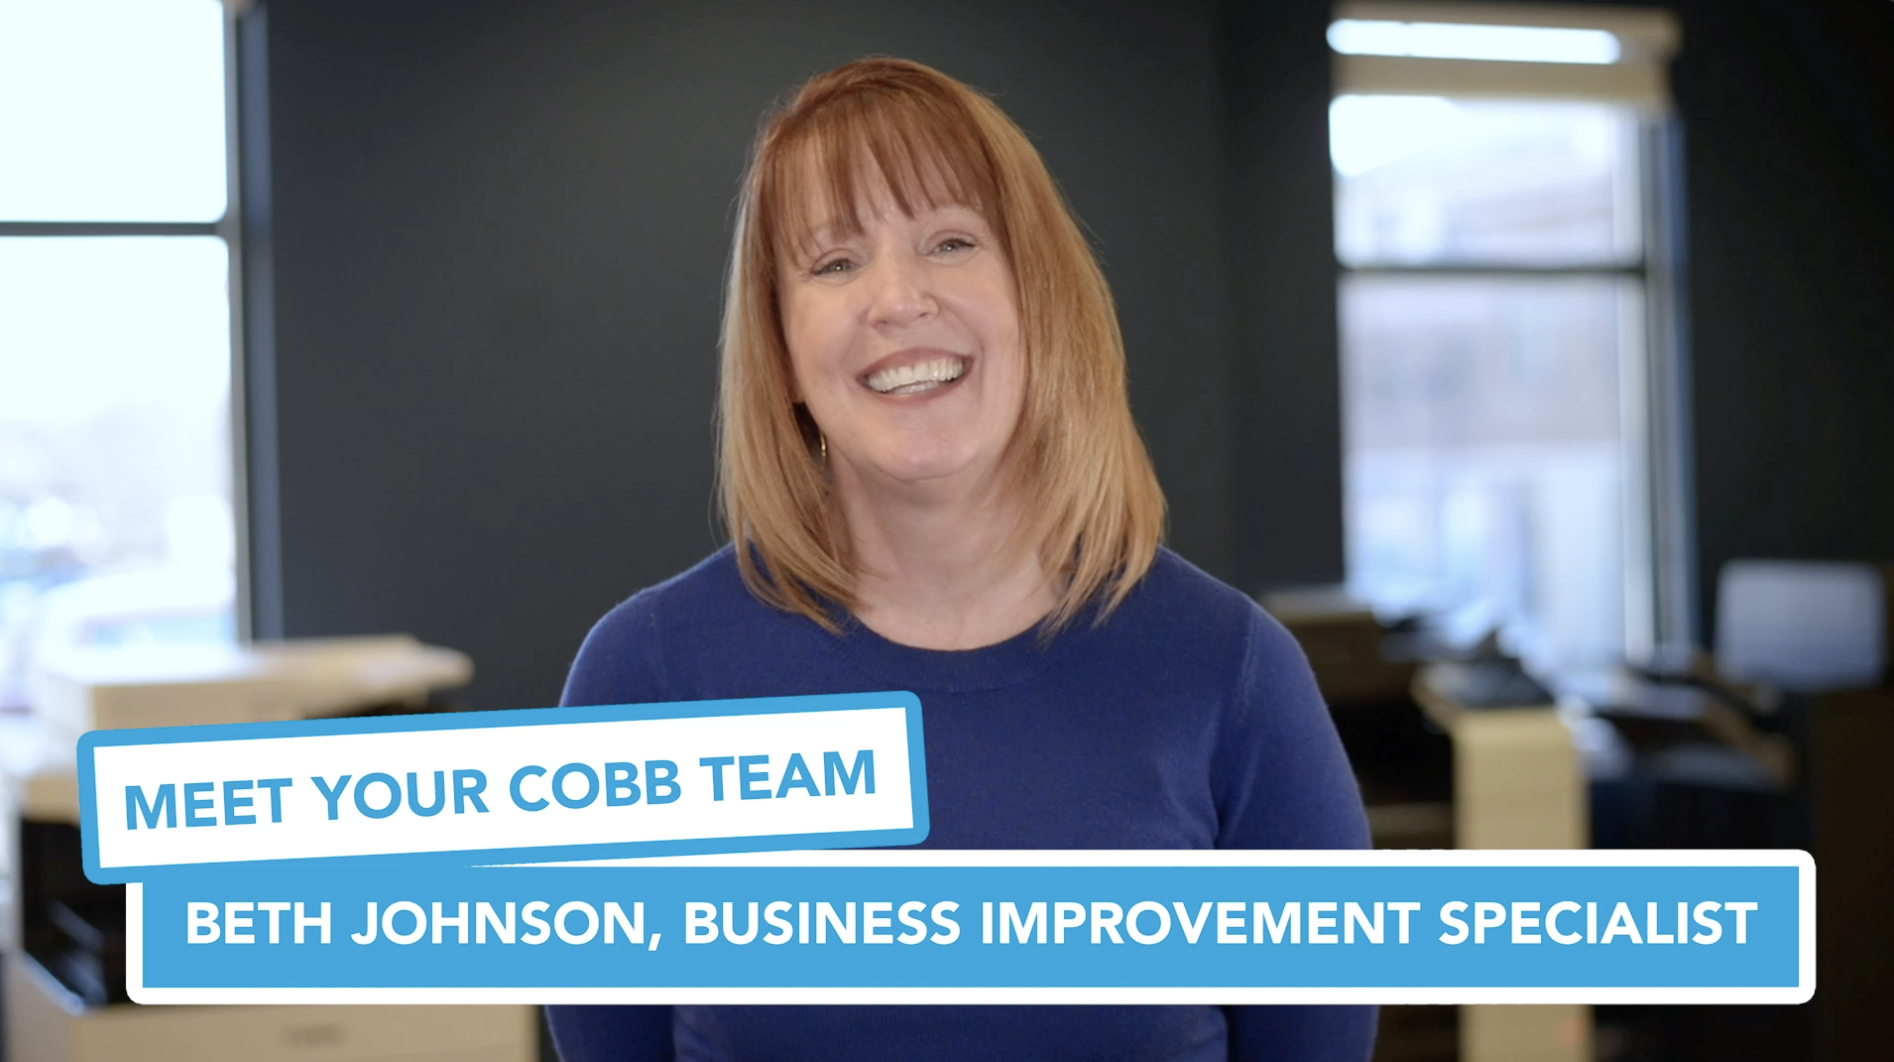 Meet Your Cobb Team Beth Johnson, Business Improvement Specialist